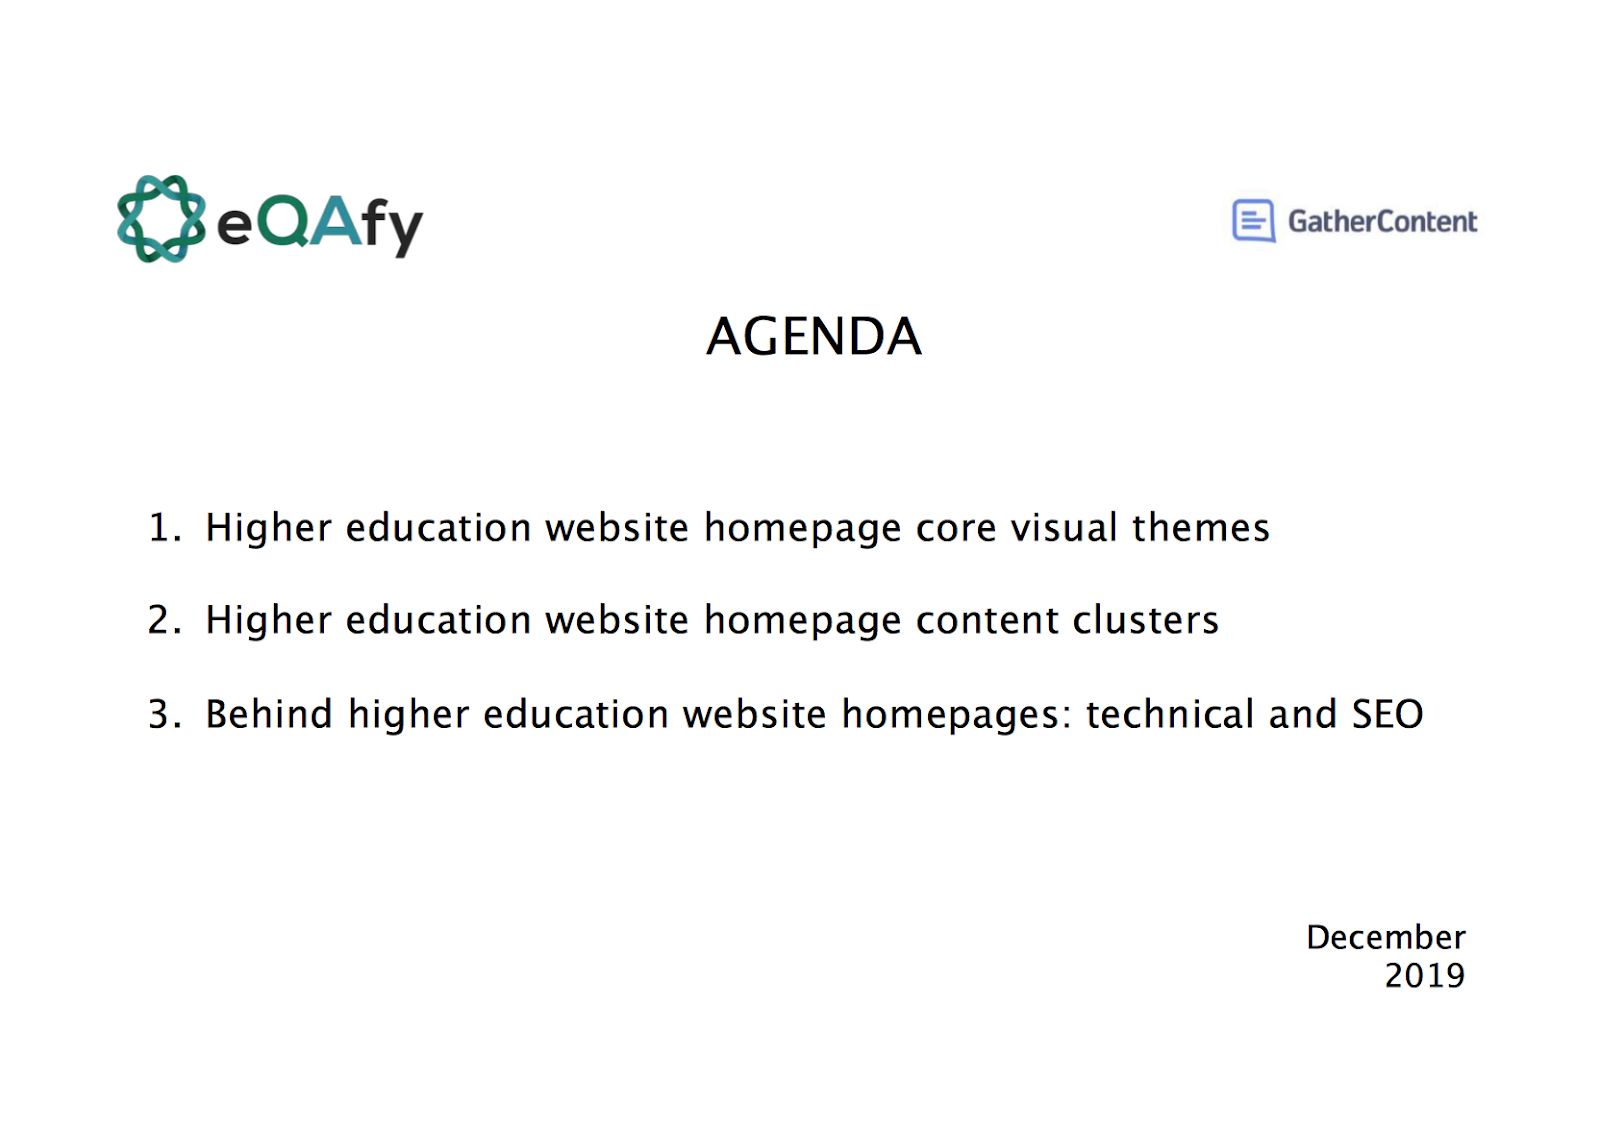 Slide showing the presentation agenda: 1) Higher education website homepage core visual themes, 2) Higher education website homepage content clusters, 3) Behind higher education website homepages: technical and SEO